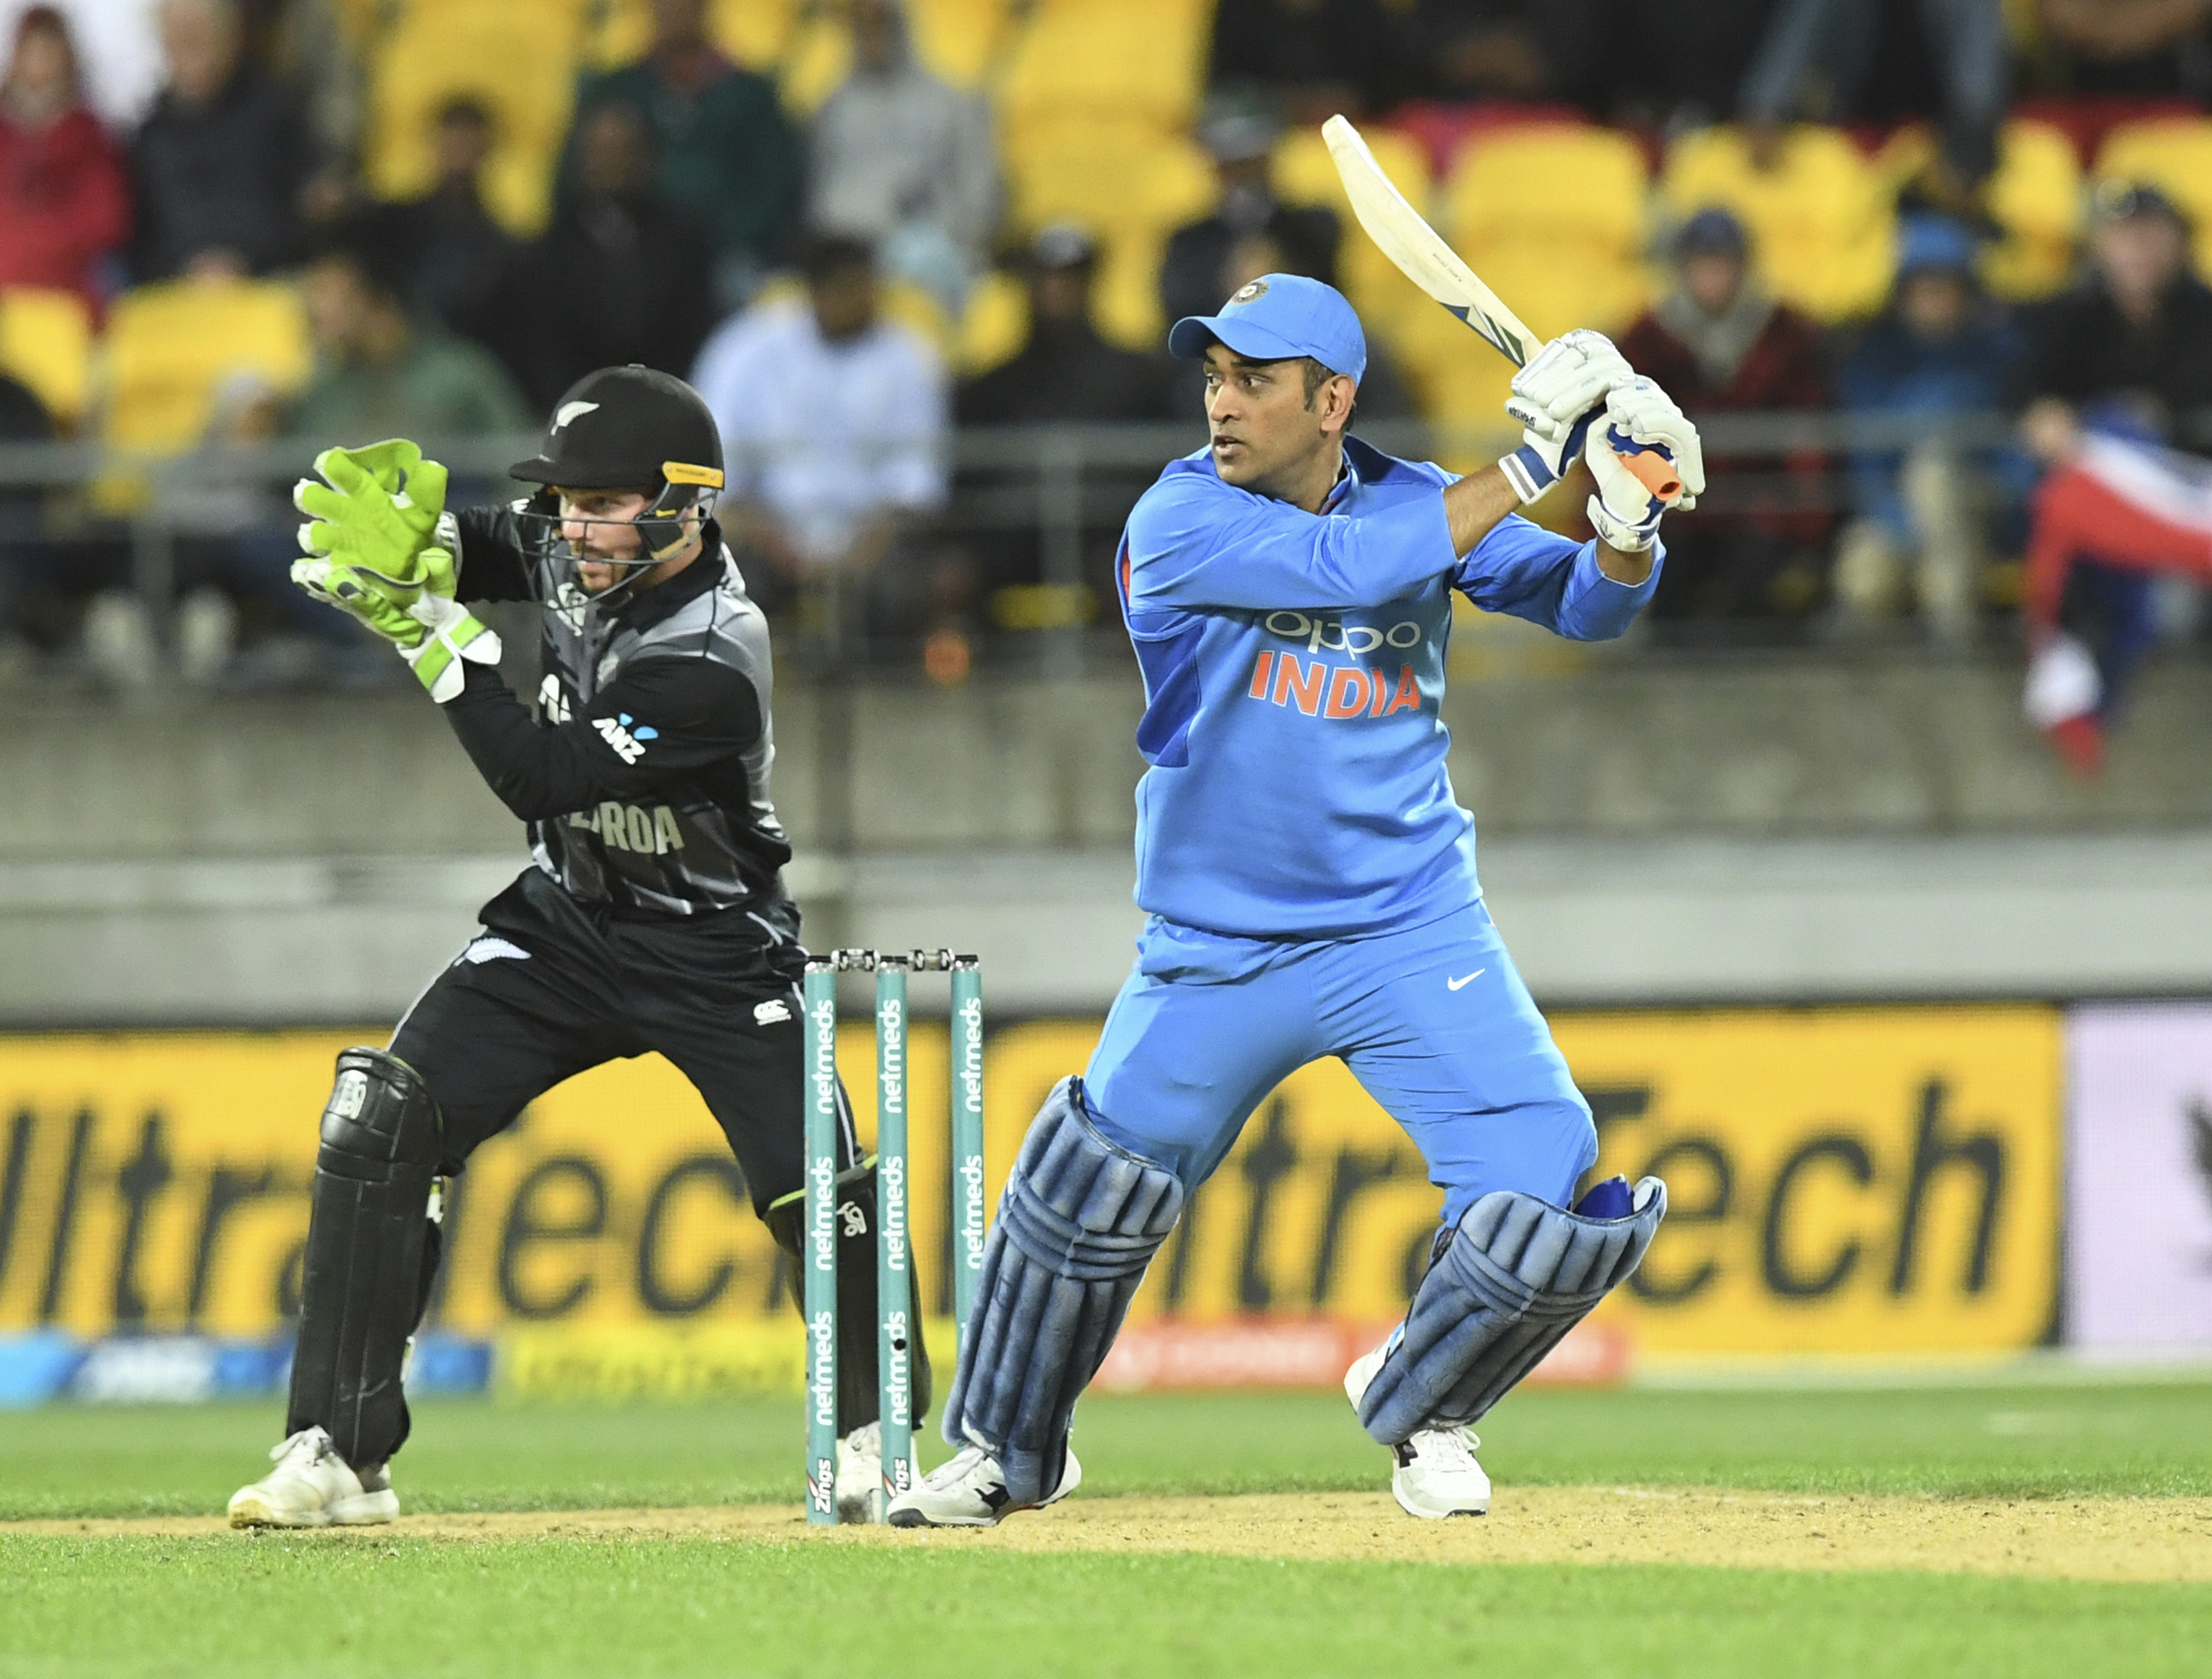 India's MS Dhoni, right, plays in front of New Zealand's Tim Seifert during the twenty/20 cricket international between New Zealand and India in Wellington - AP